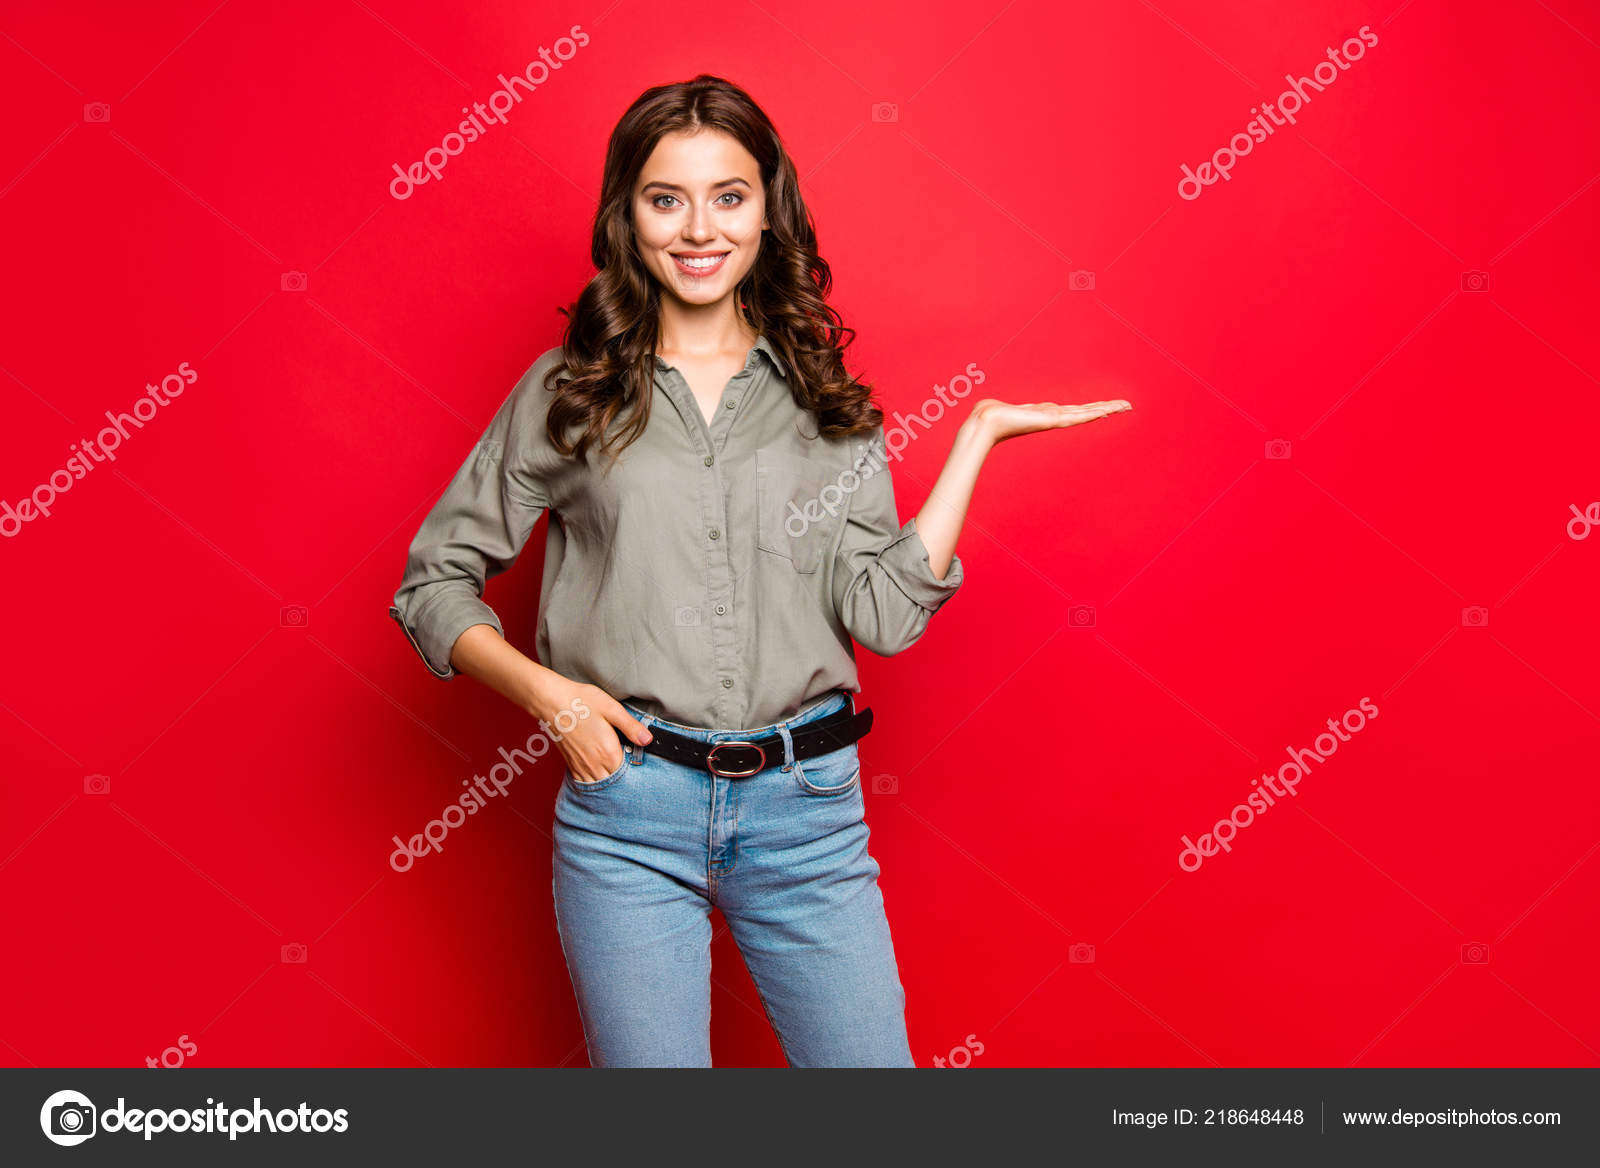 Advertising Concept Portrait Young Woman Blue Jeans Shirt Hold